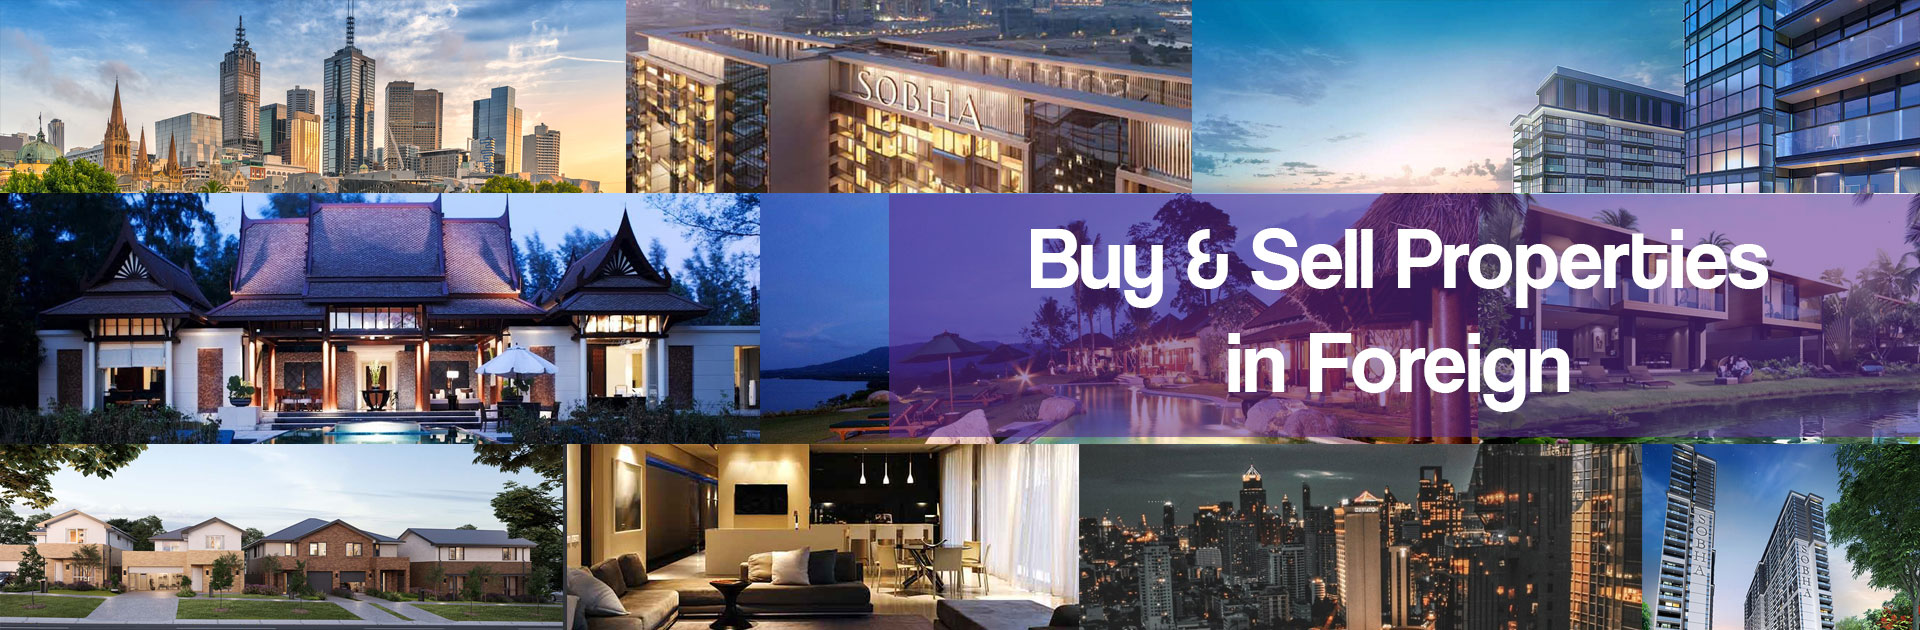 Buy & Sell Properties in Foriegn